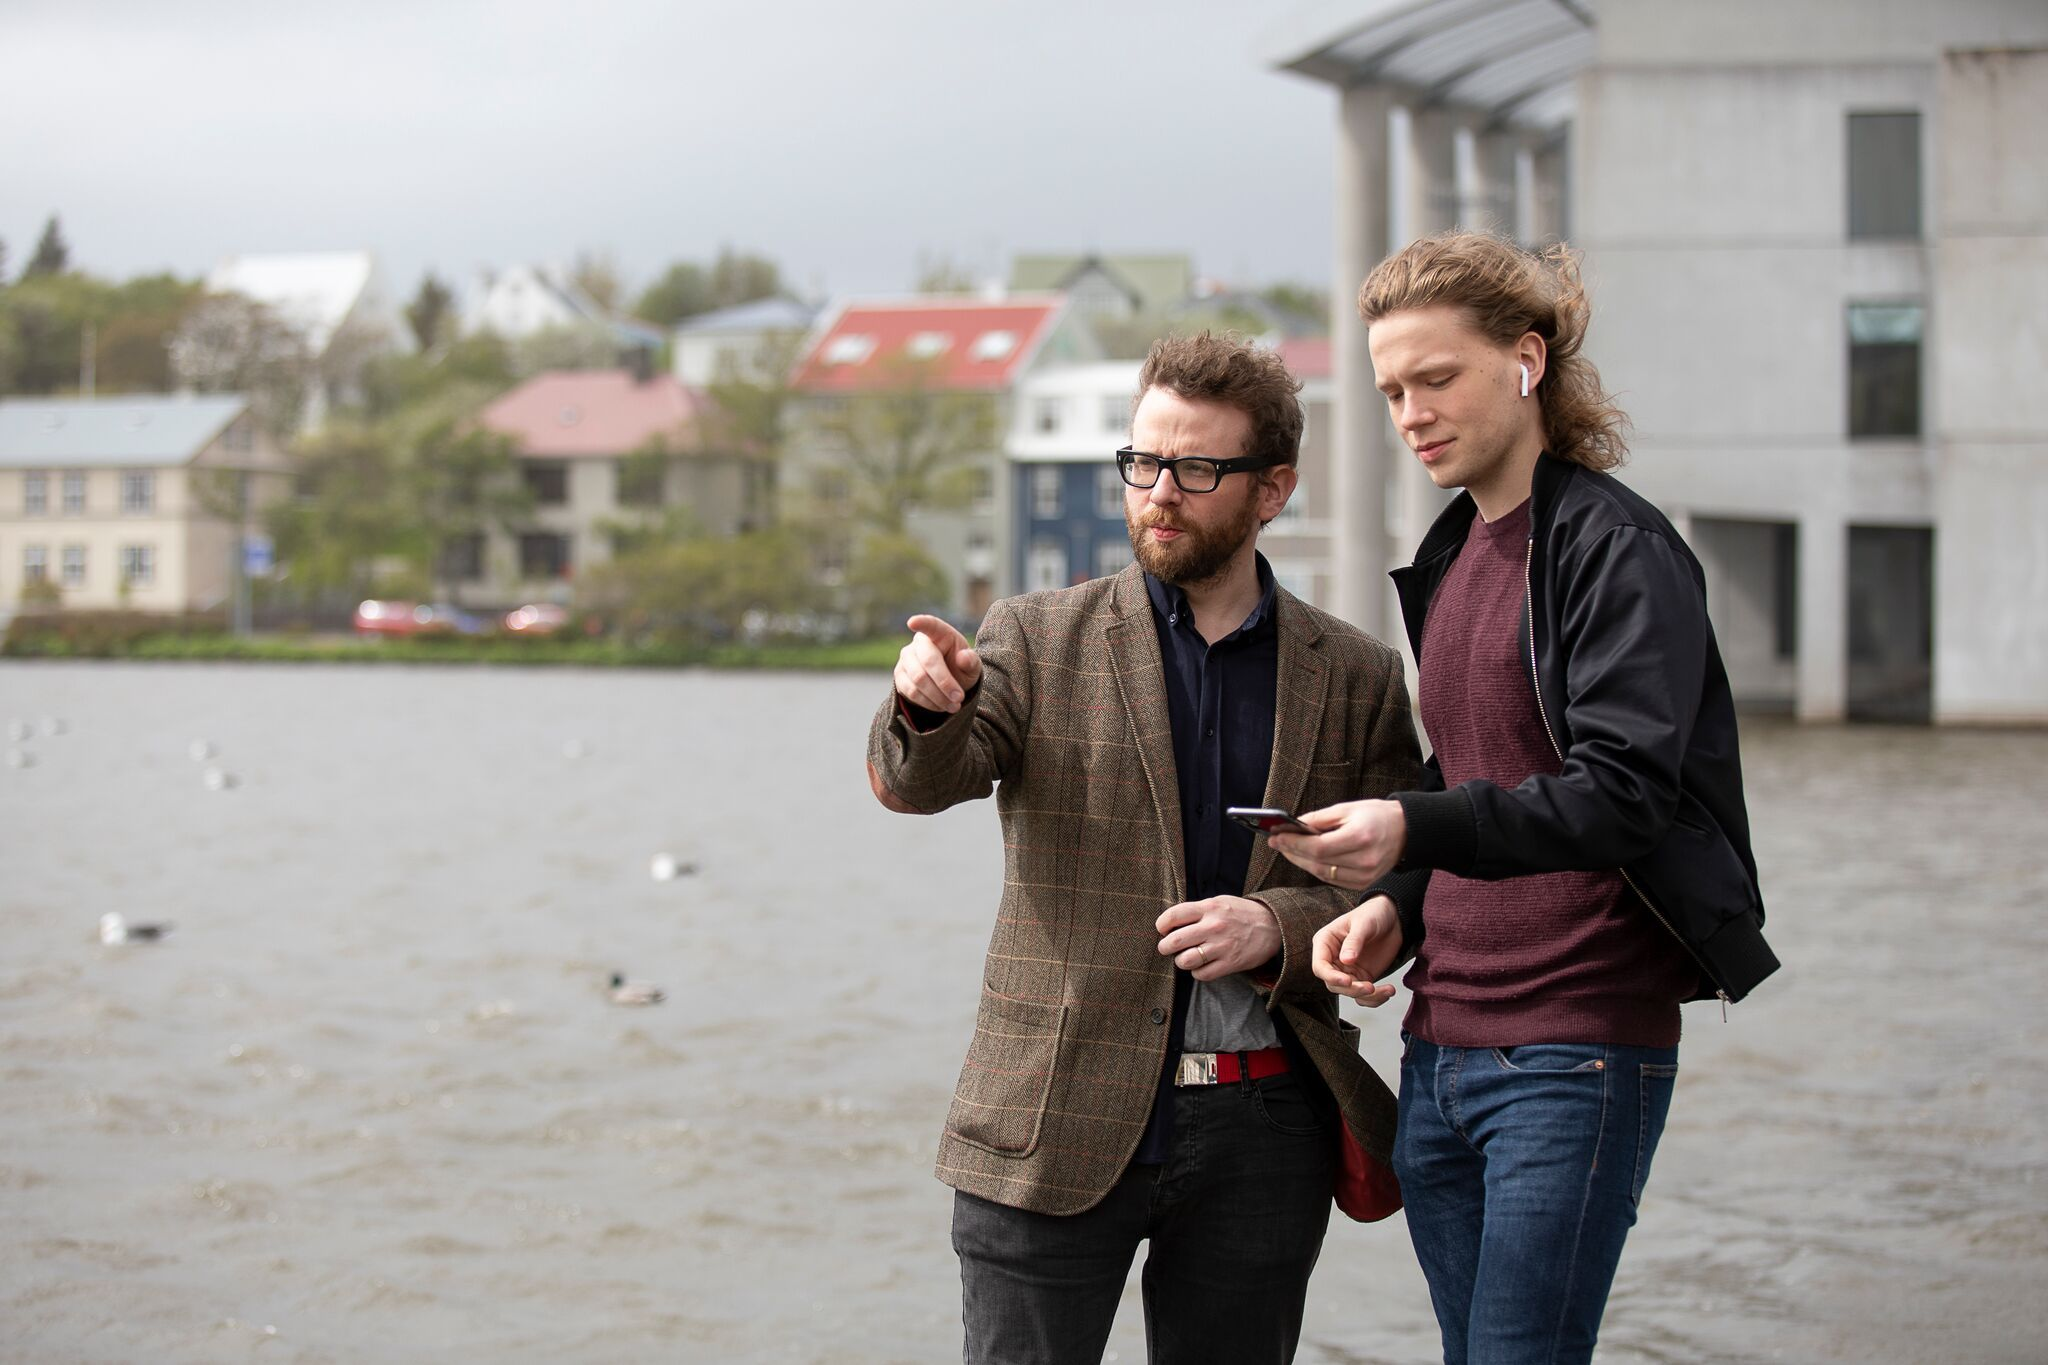 Read the interview with Úlfur and Halldór in  The Reykjavík Grapevine